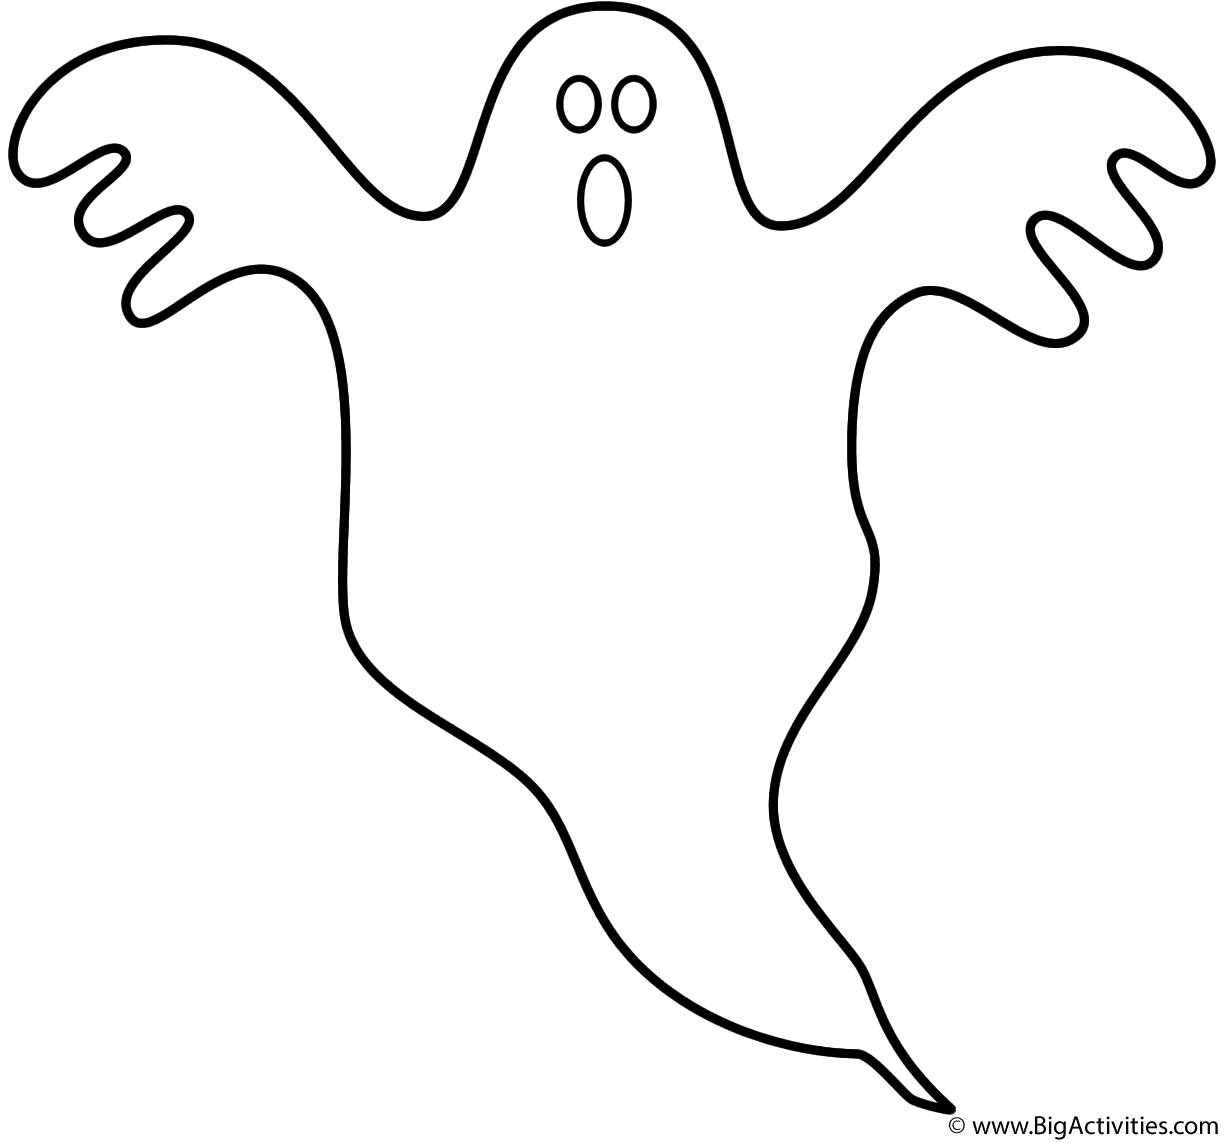 coloring ghost images ghost coloring pages getcoloringpagescom ghost coloring images